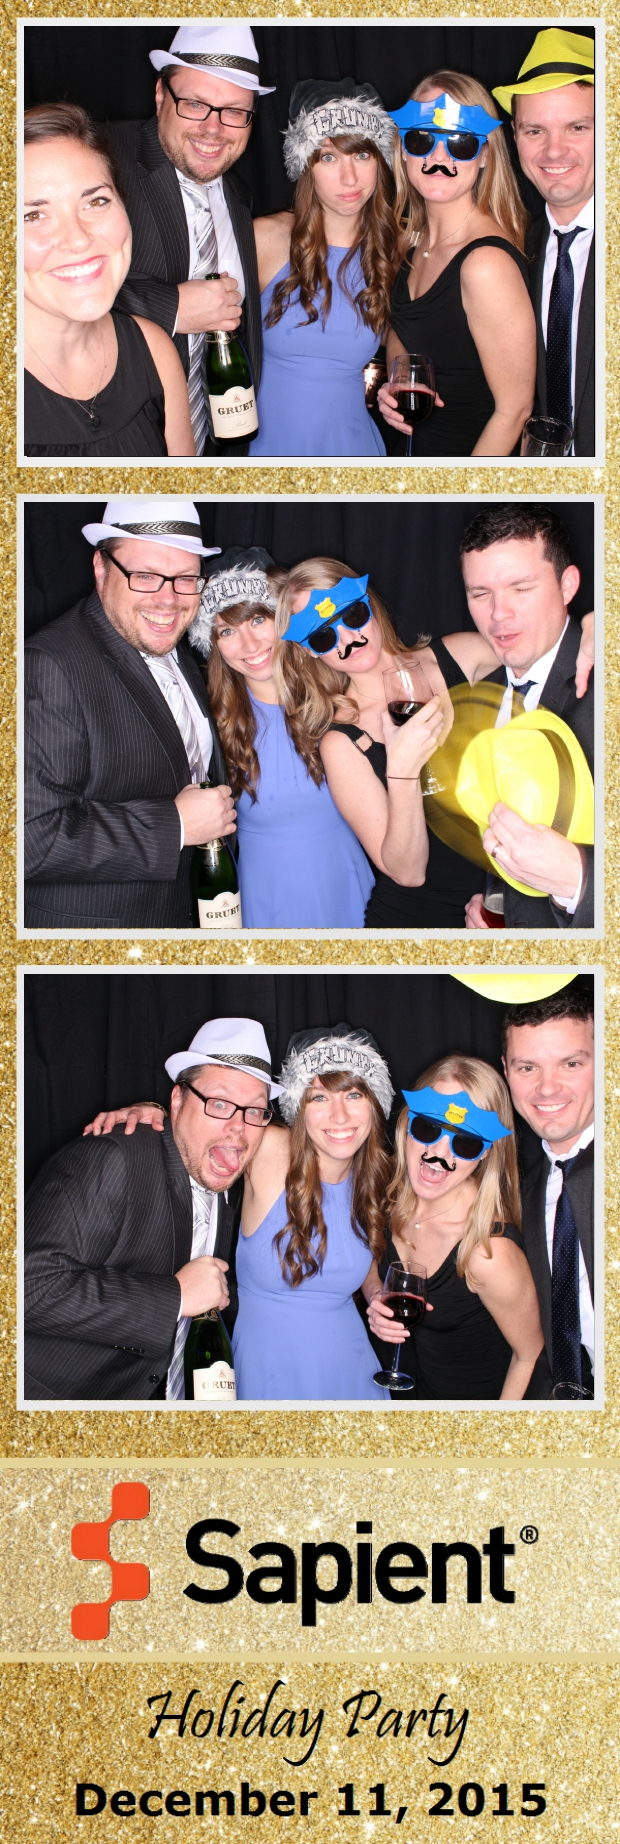 Guest House Events Photo Booth Sapient Holiday Party (24).jpg